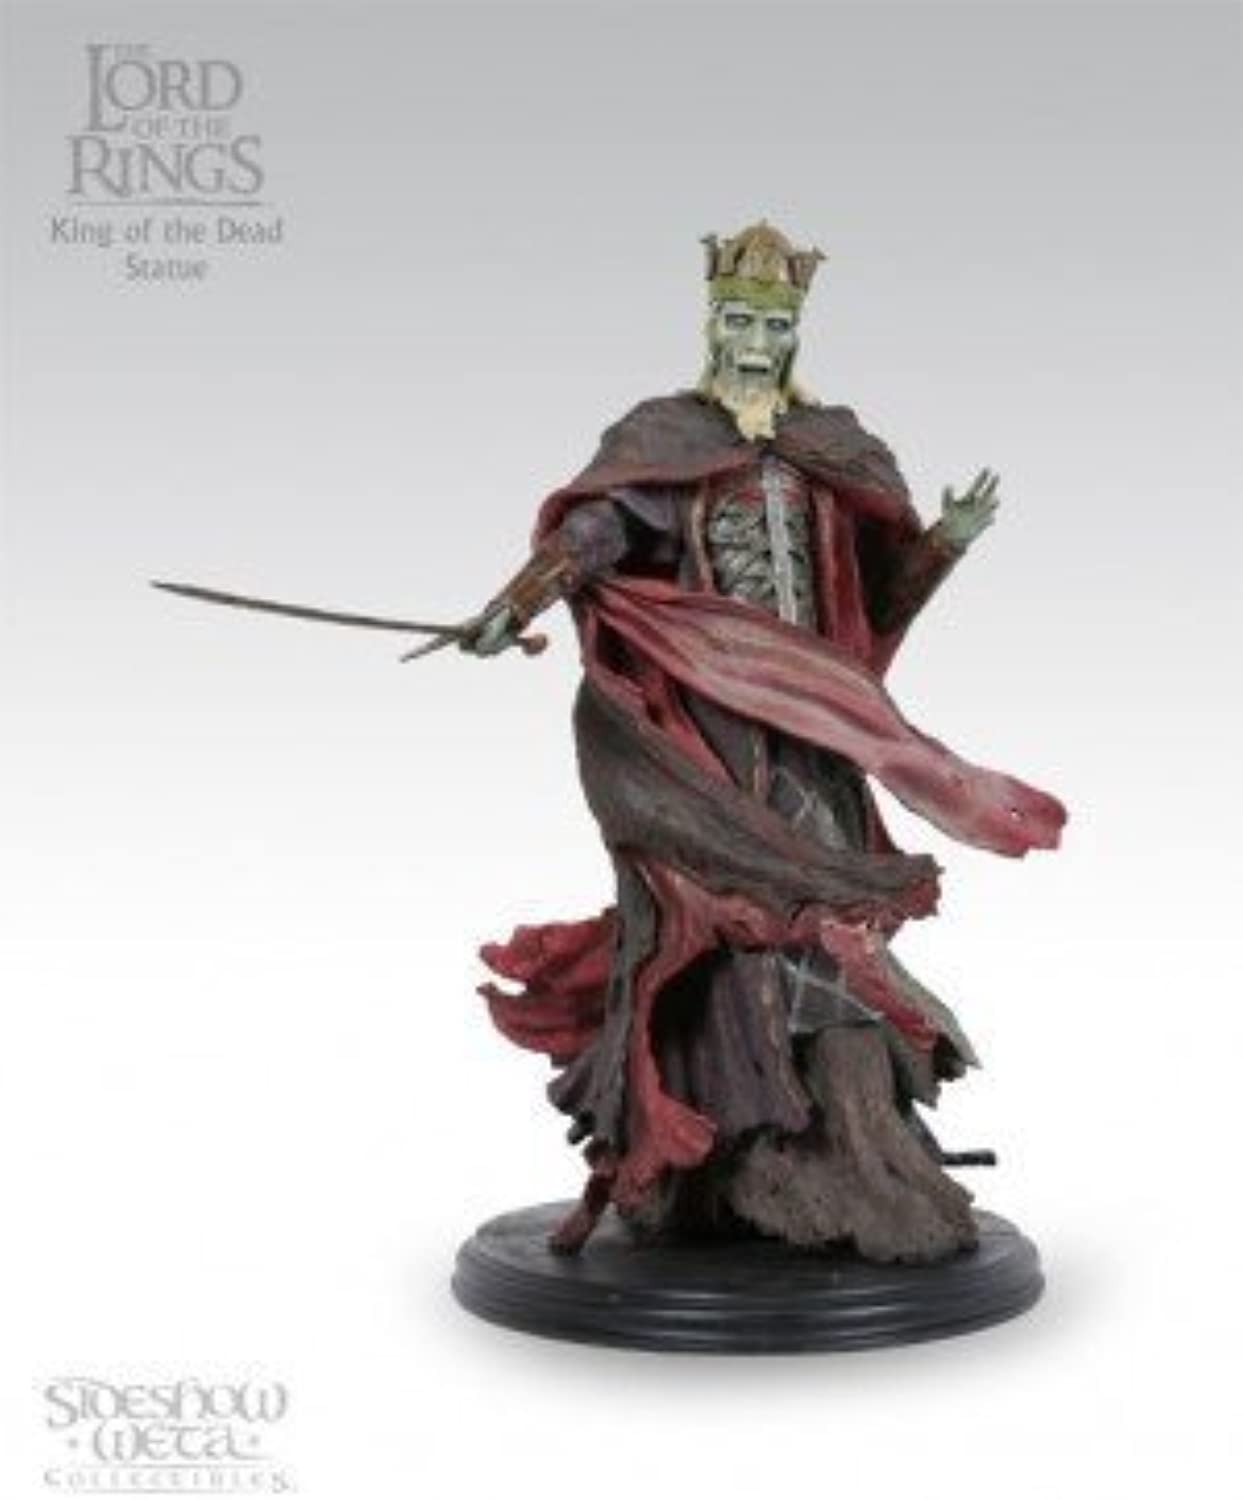 ventas de salida King Of The Dead from Lord Lord Lord Of The Rings by Sideshow Collectibles  Tienda 2018